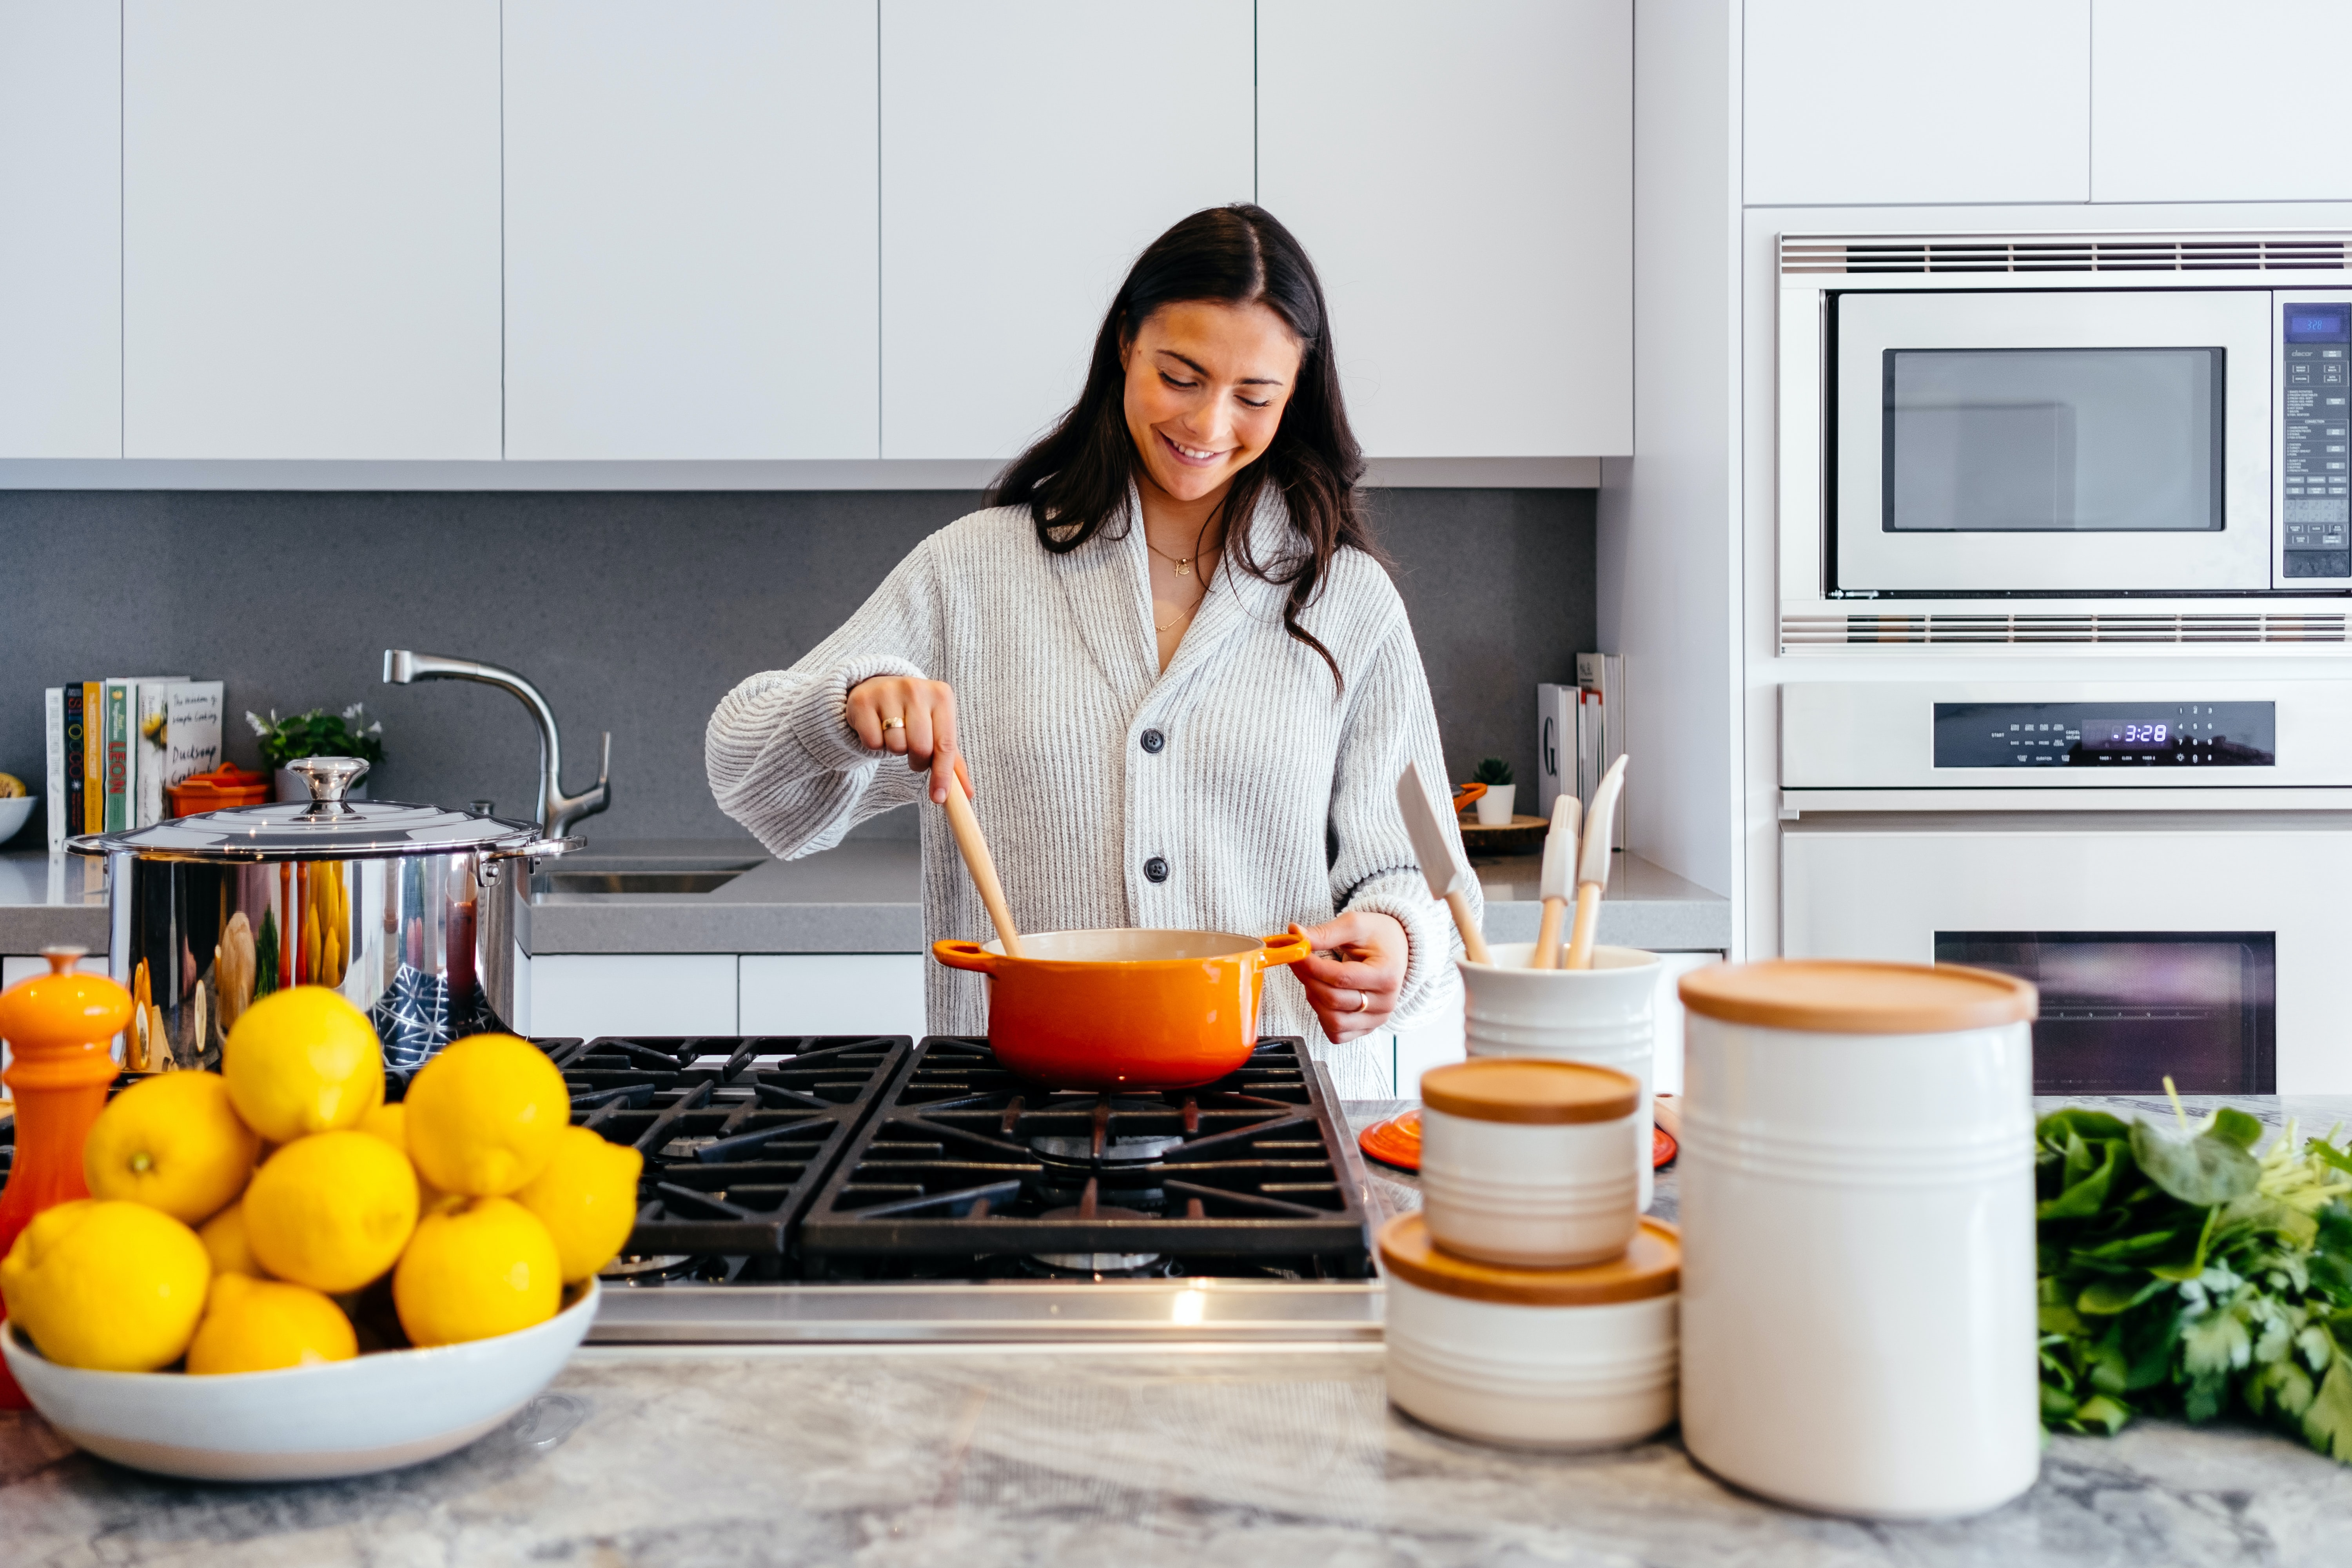 Woman in kitchen stirring a orange pot with wooden spoon